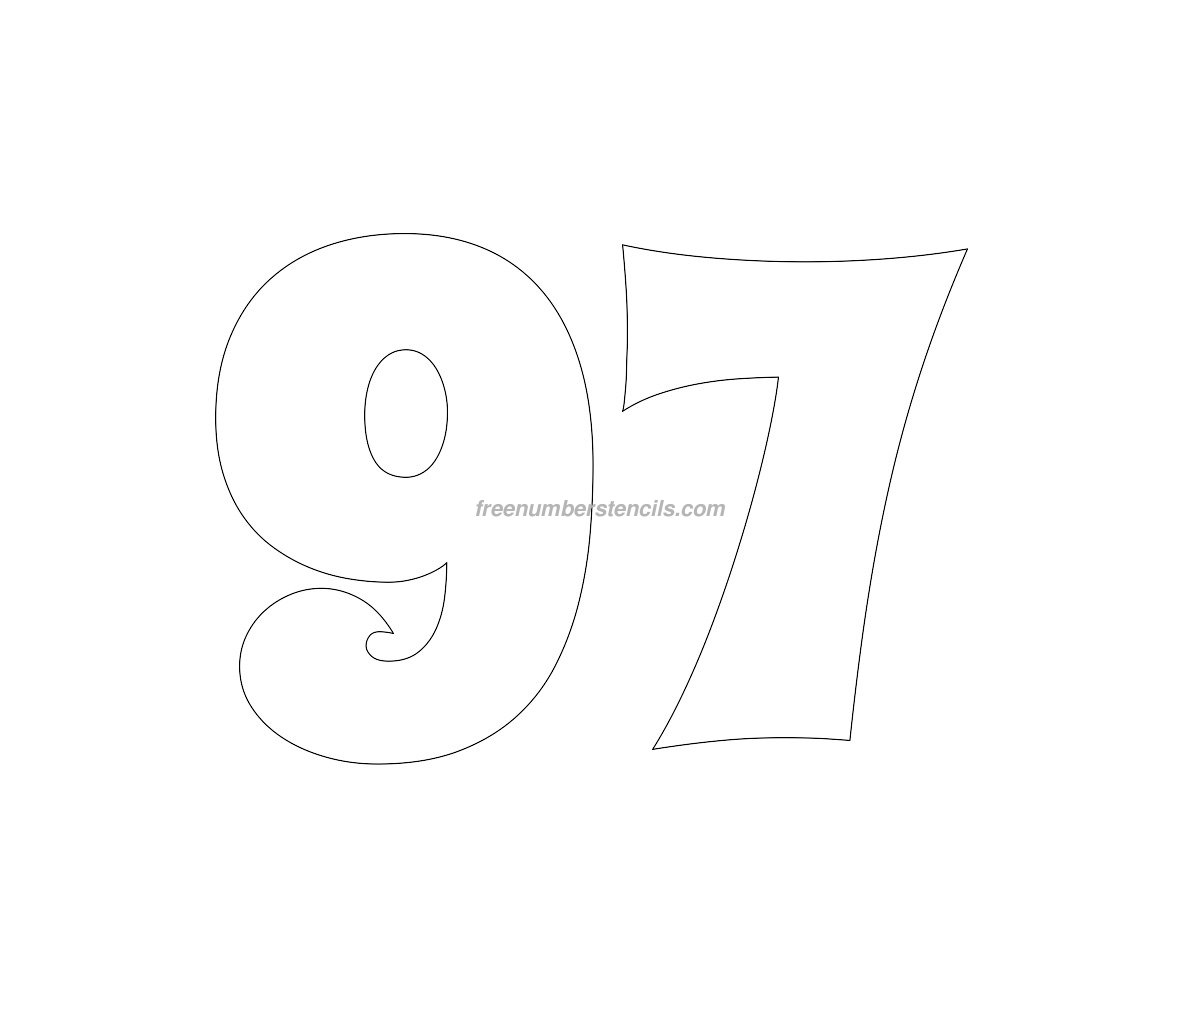 stencil-groovy-number-97